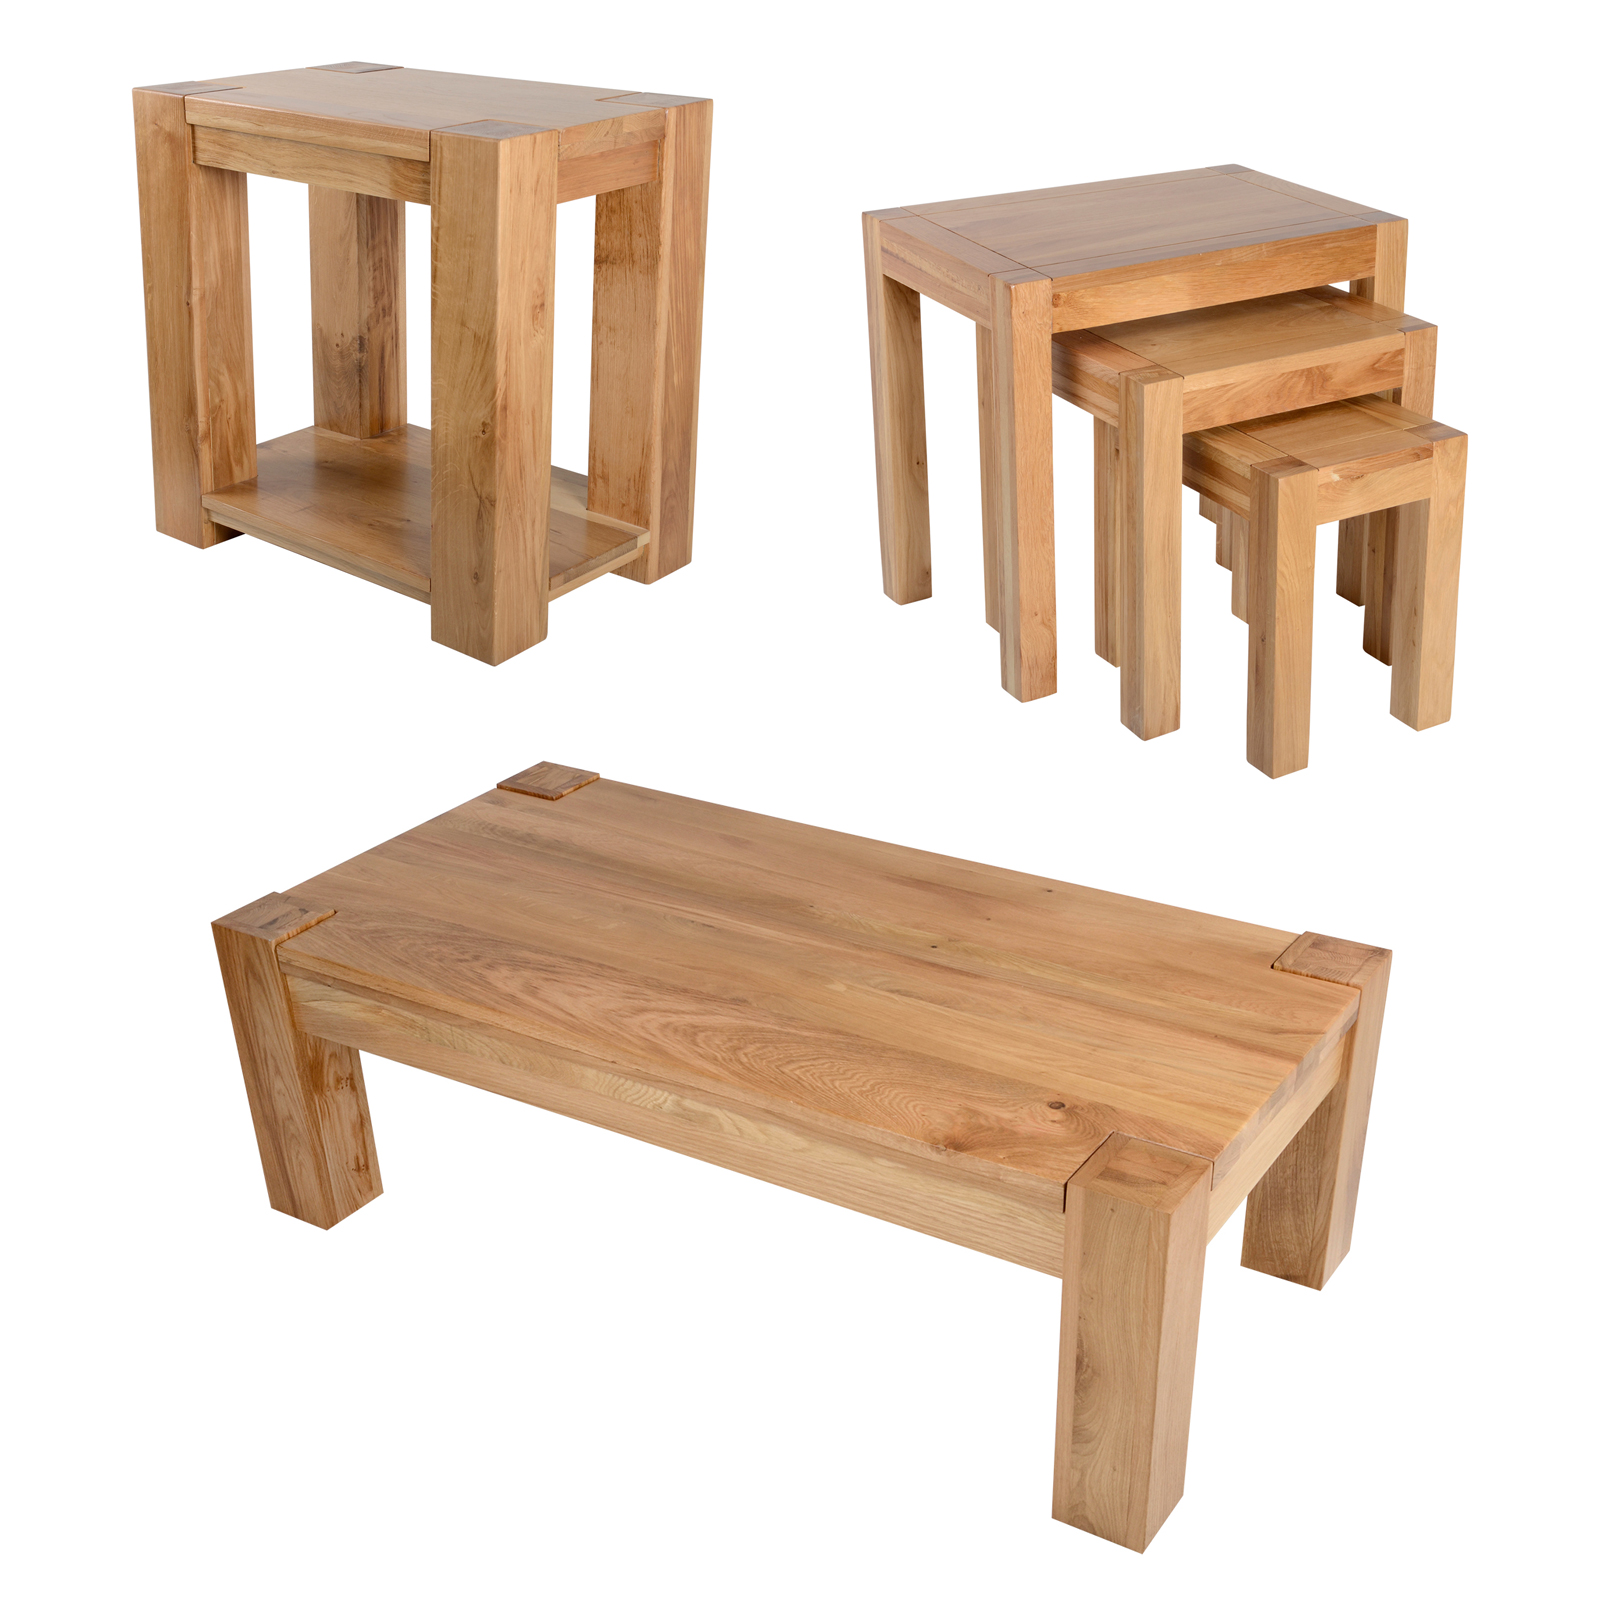 Very Impressive portraiture of Home Furniture & DIY > Furniture > Tables > Other Tables with #4B2208 color and 1600x1600 pixels